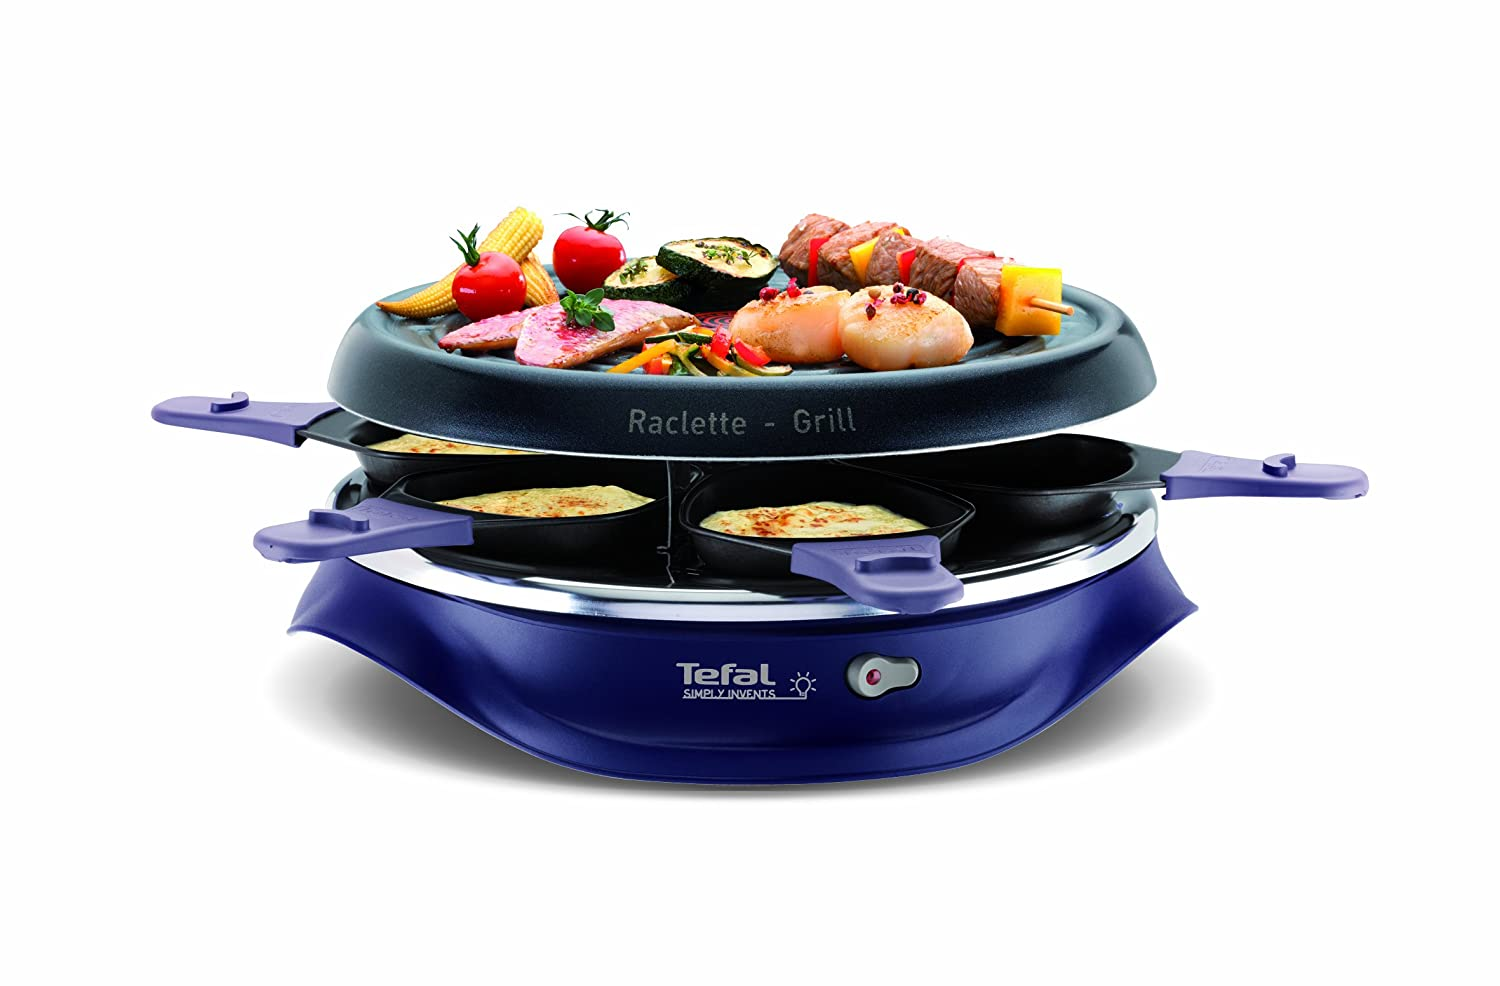 Raclette Grill Australia tefal simply invents x6 raclette re506412 six pans with non stick